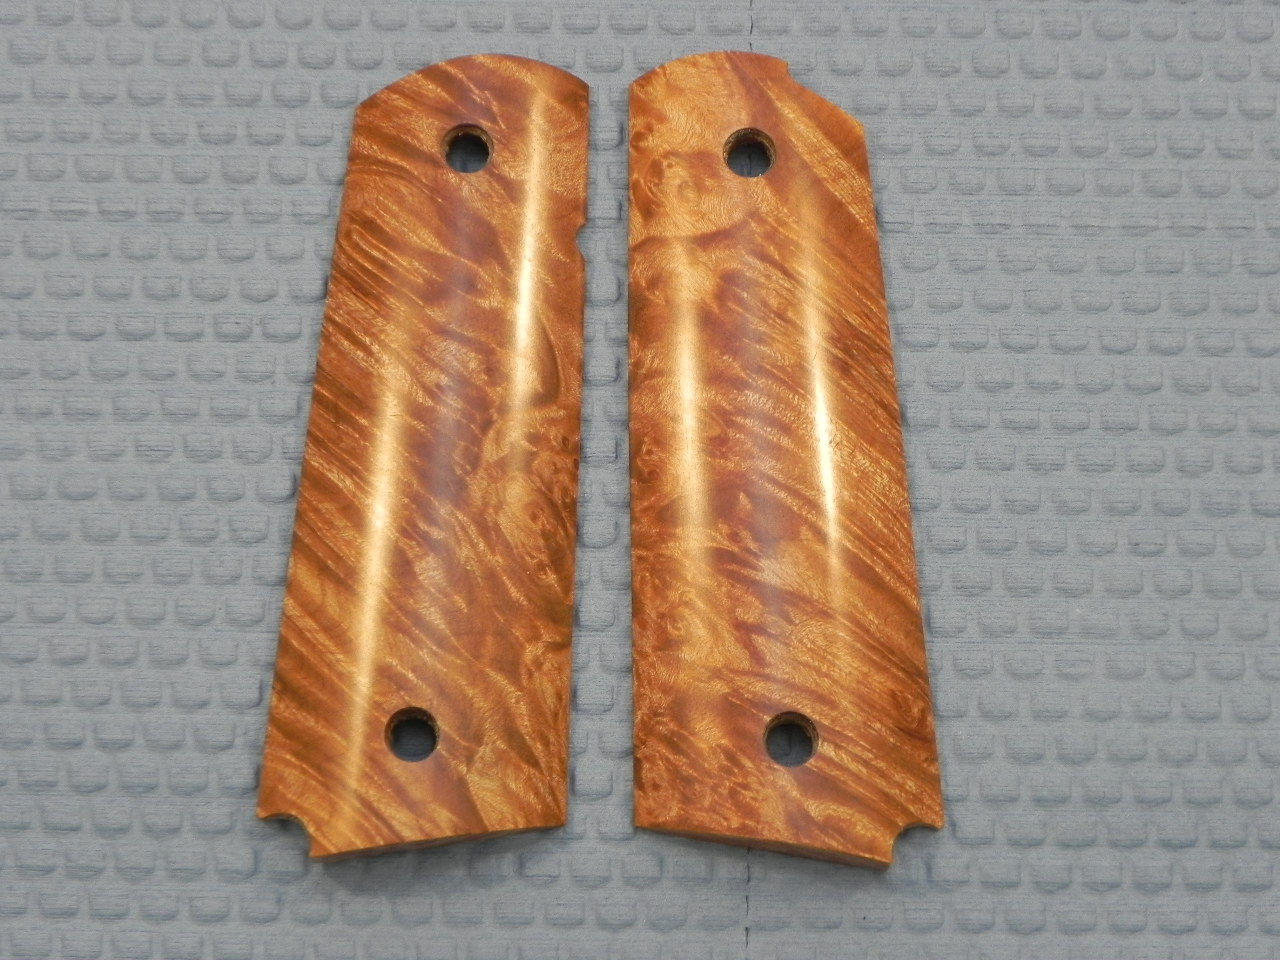 SUGMBNS1 - 1911 C&S Premium Handmade Smooth Maple Burl Naturl Grips